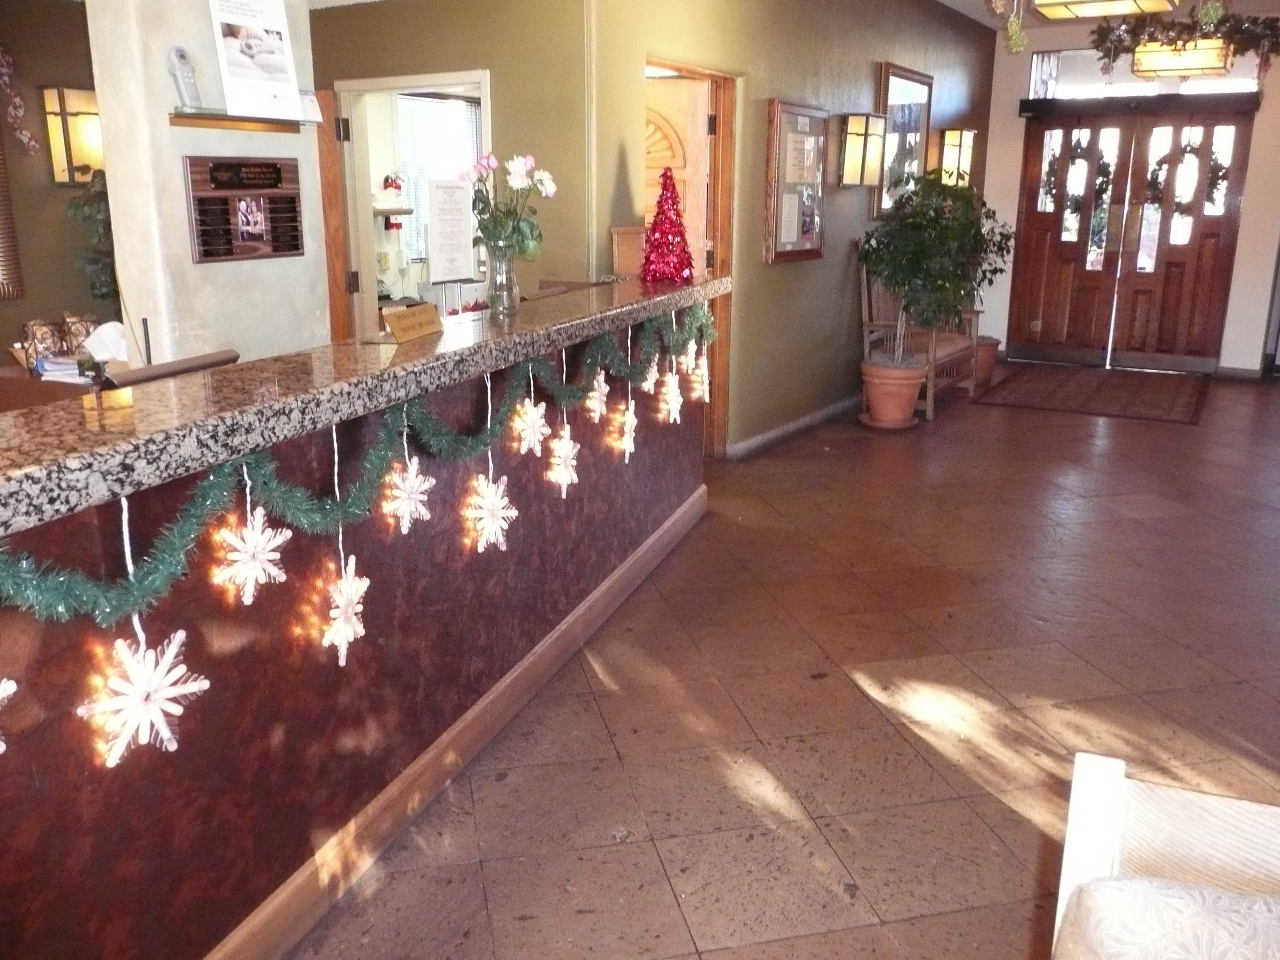 Festive Holiday Decor At Poco Diablo Resort In Sedona